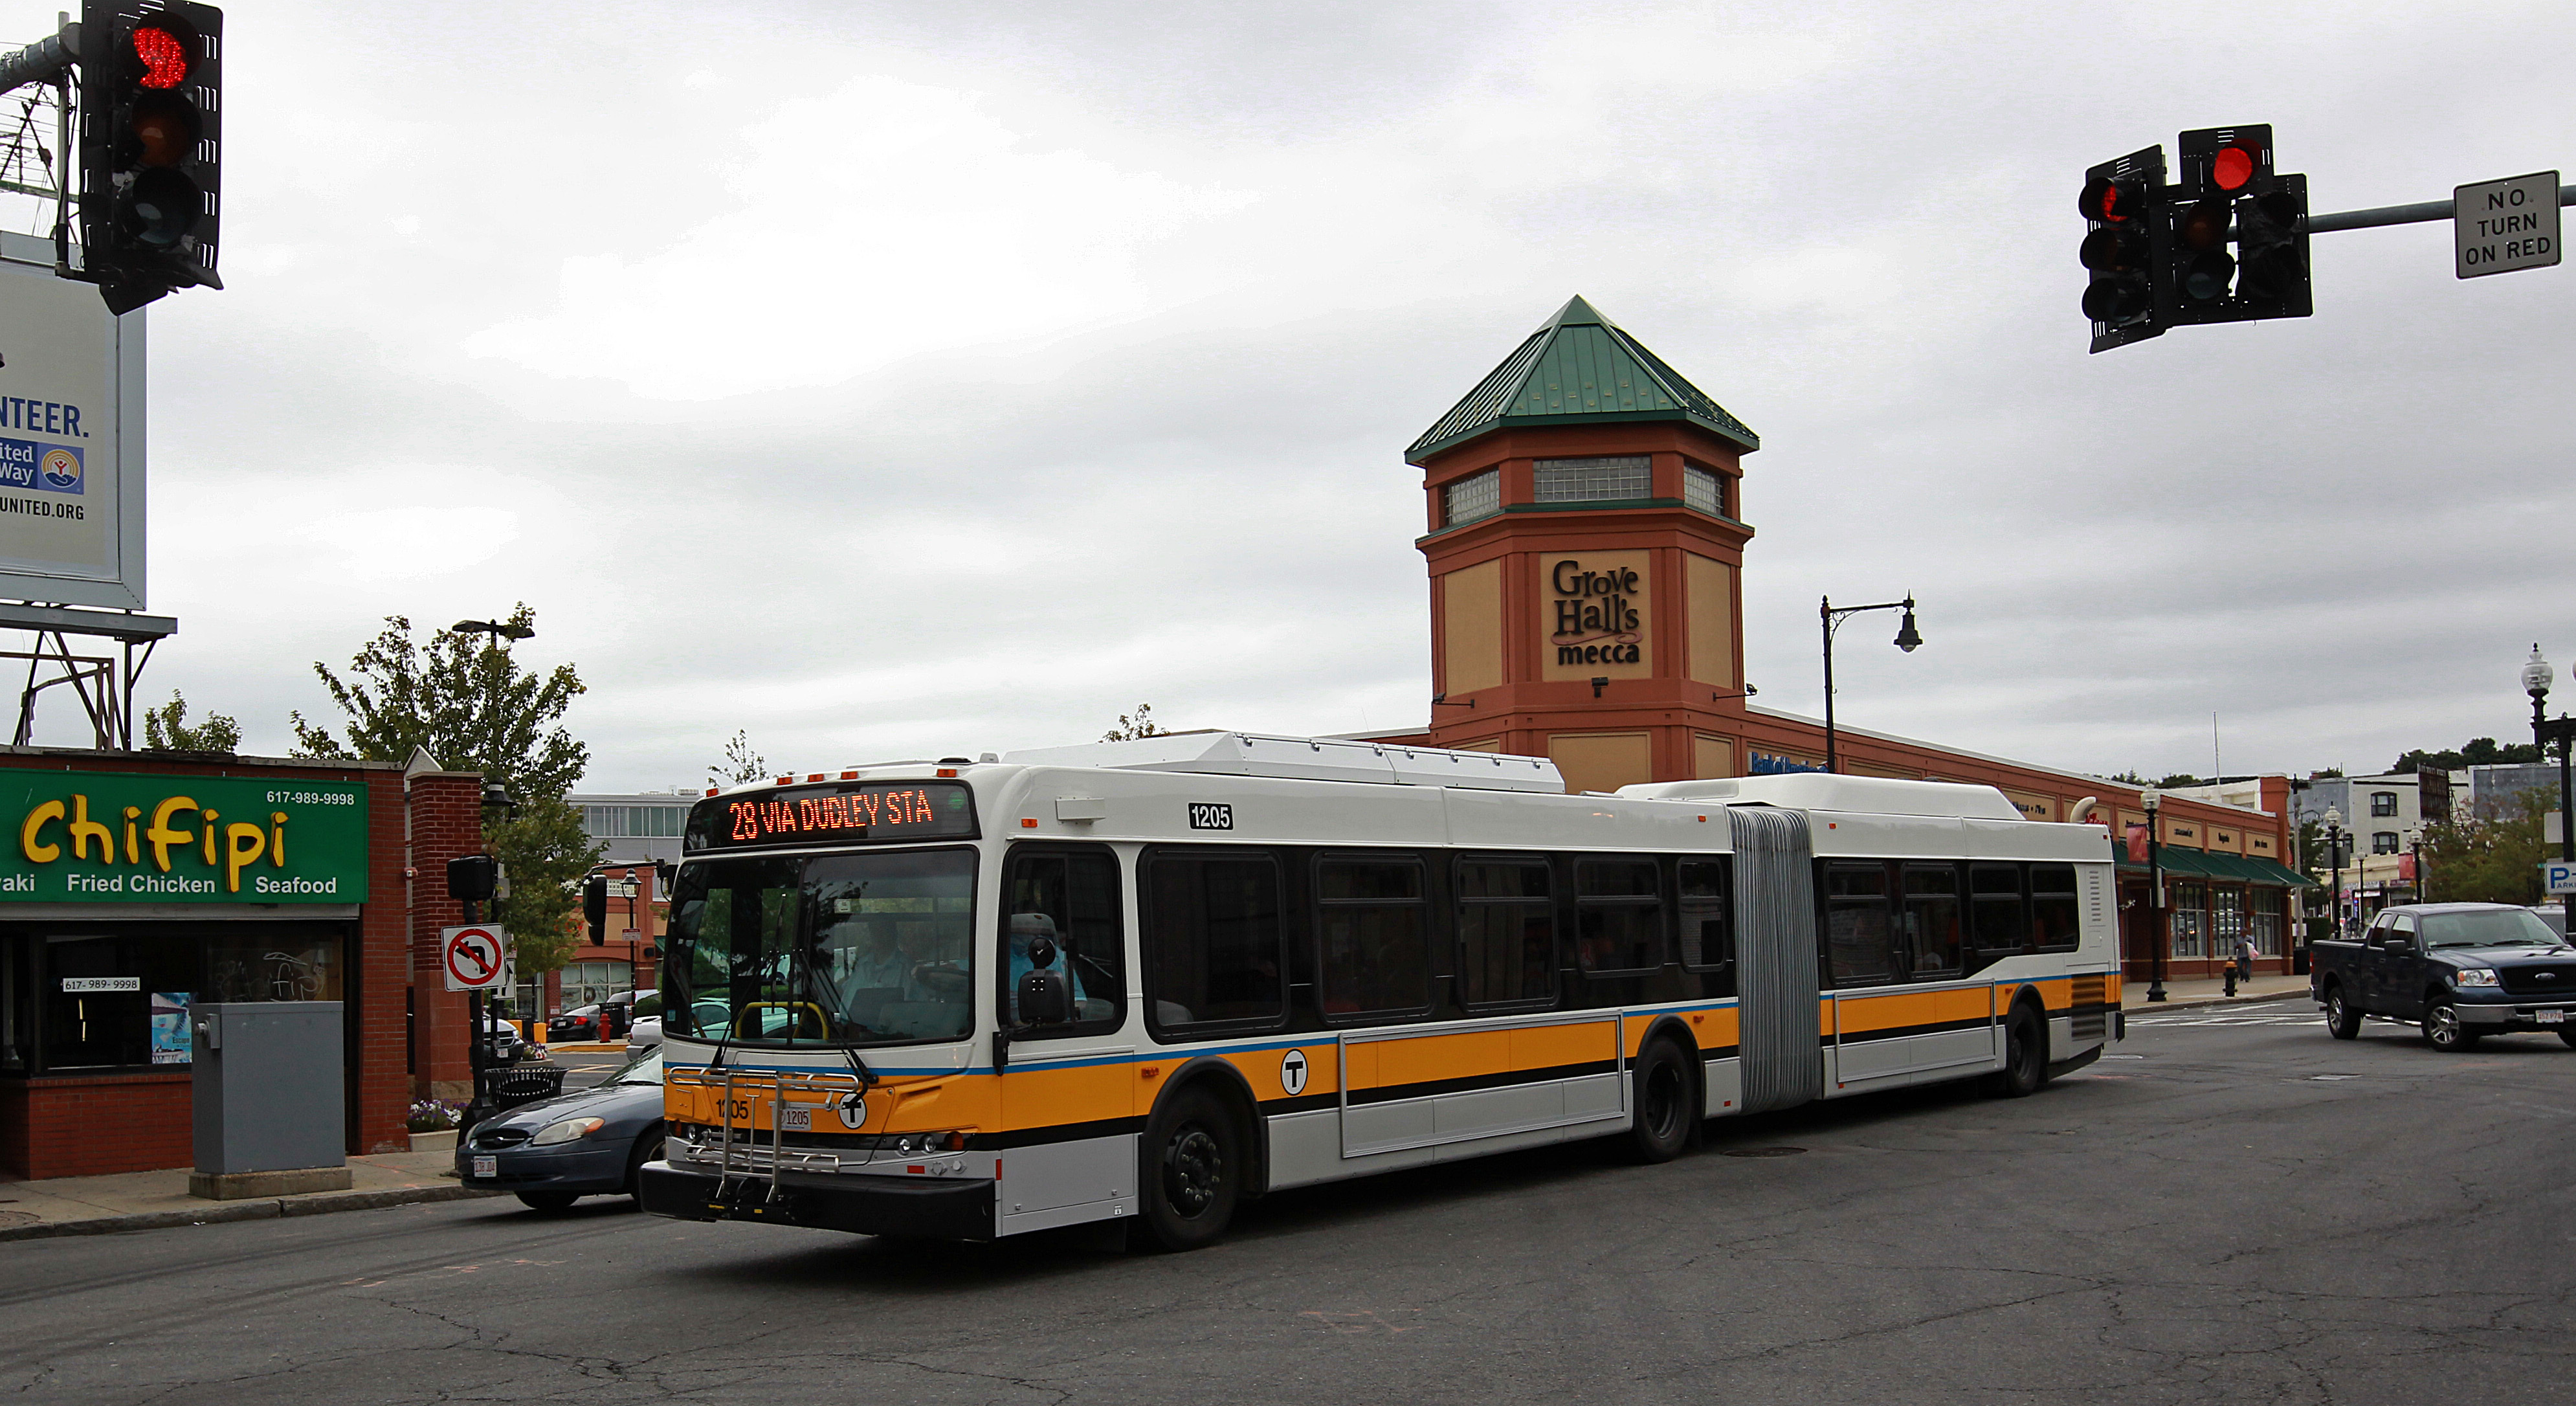 A bus runs along Boston's Blue Hill Avenue.